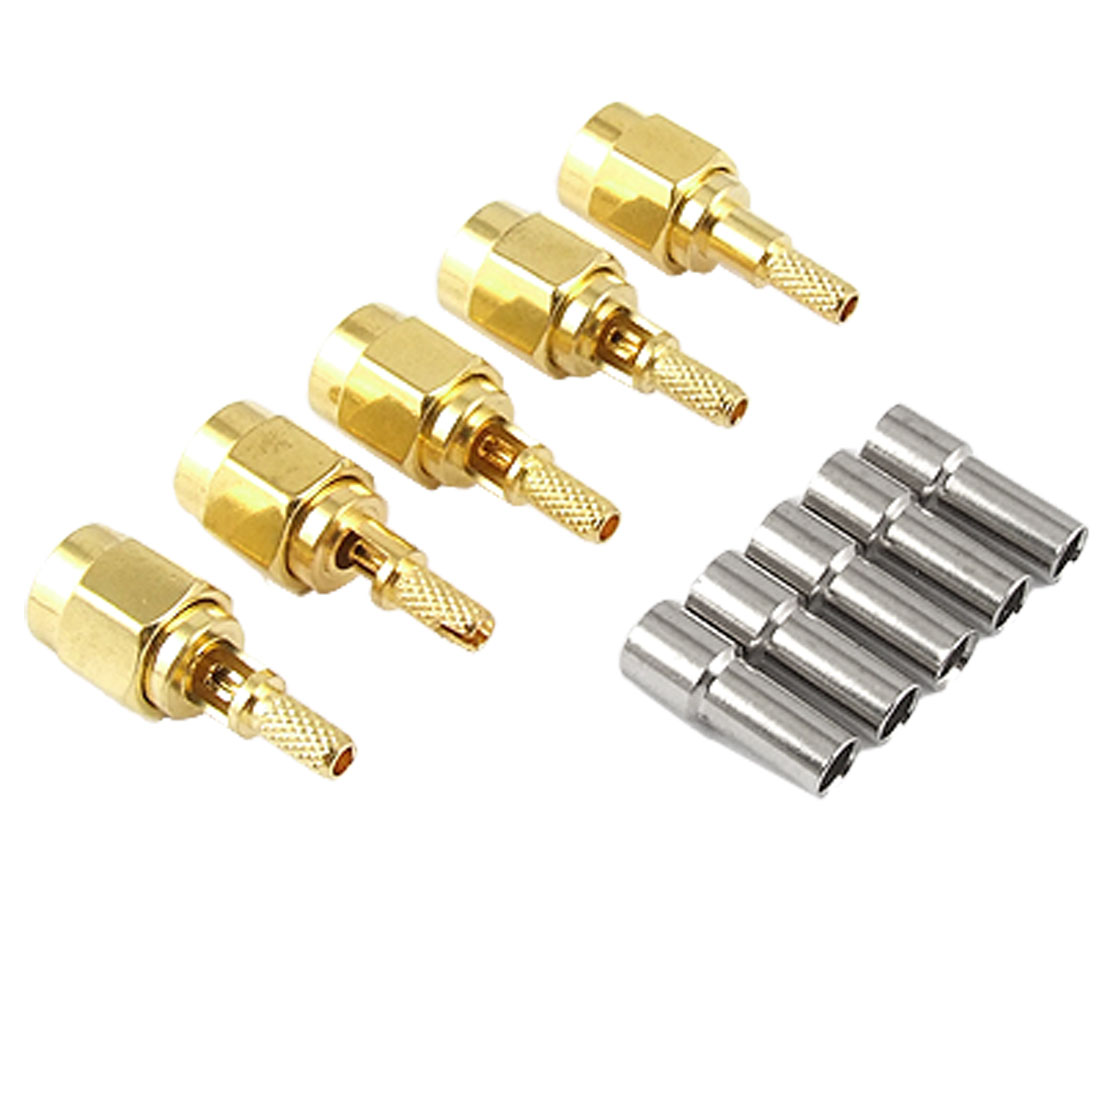 5pcs Gold Tone Plated SMA Male RG316 RG174 LMR100 Crimp Coaxial Connector